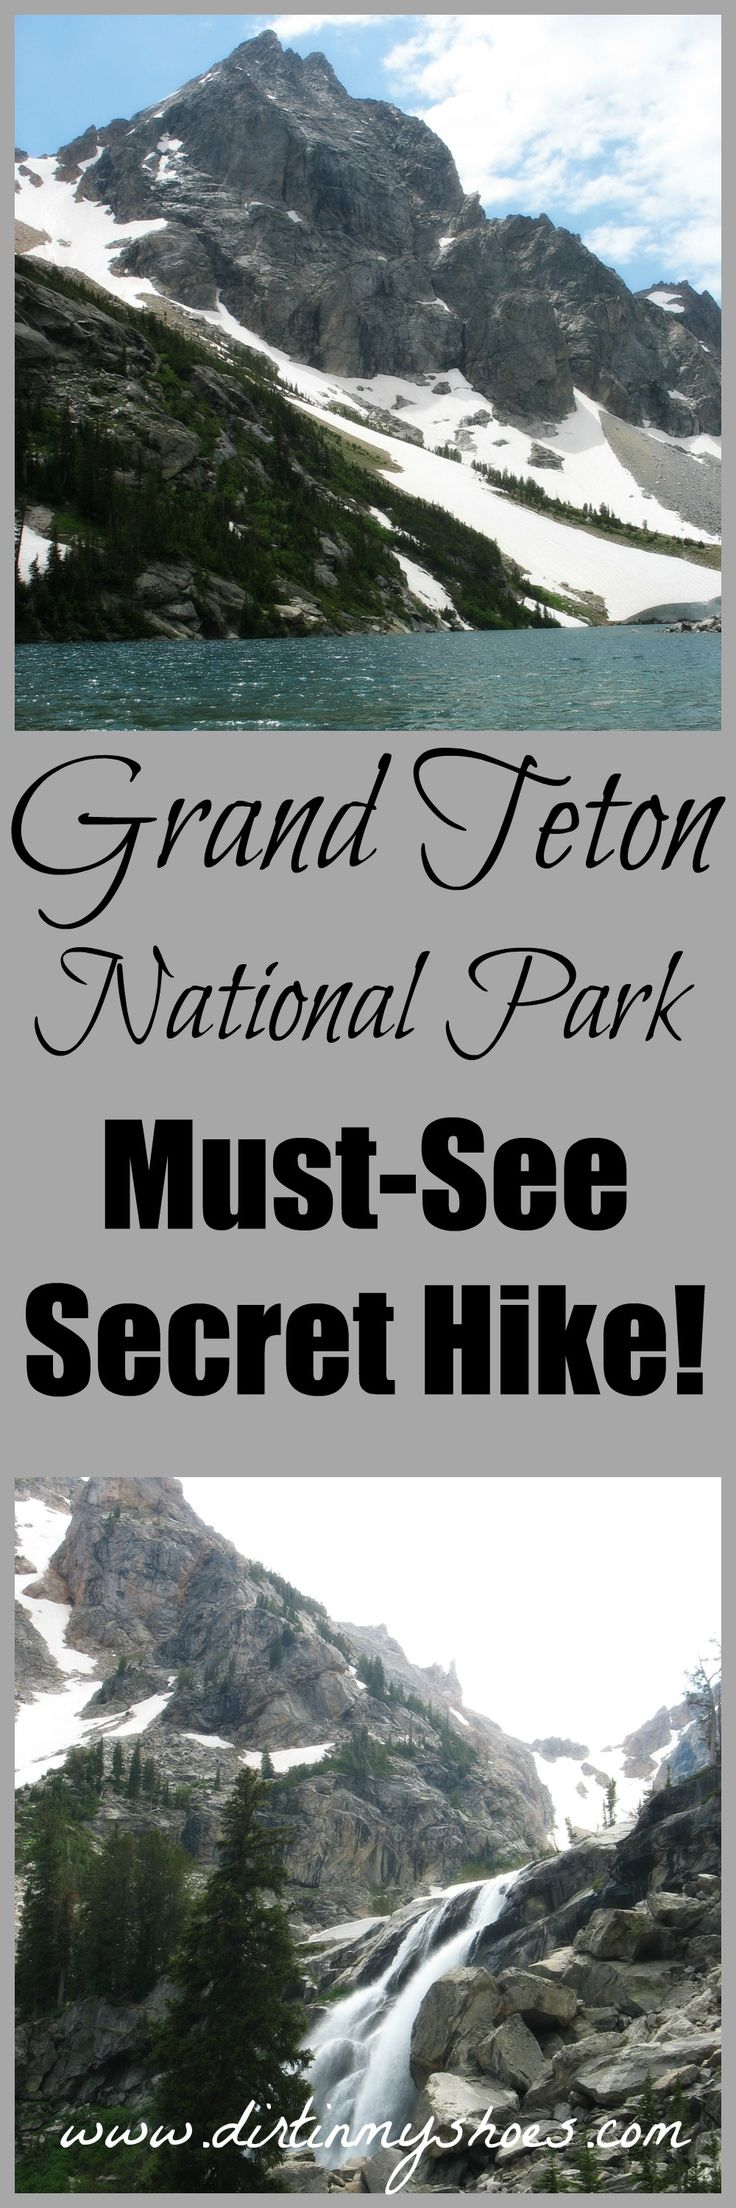 Secret Hike in Grand Teton National Park